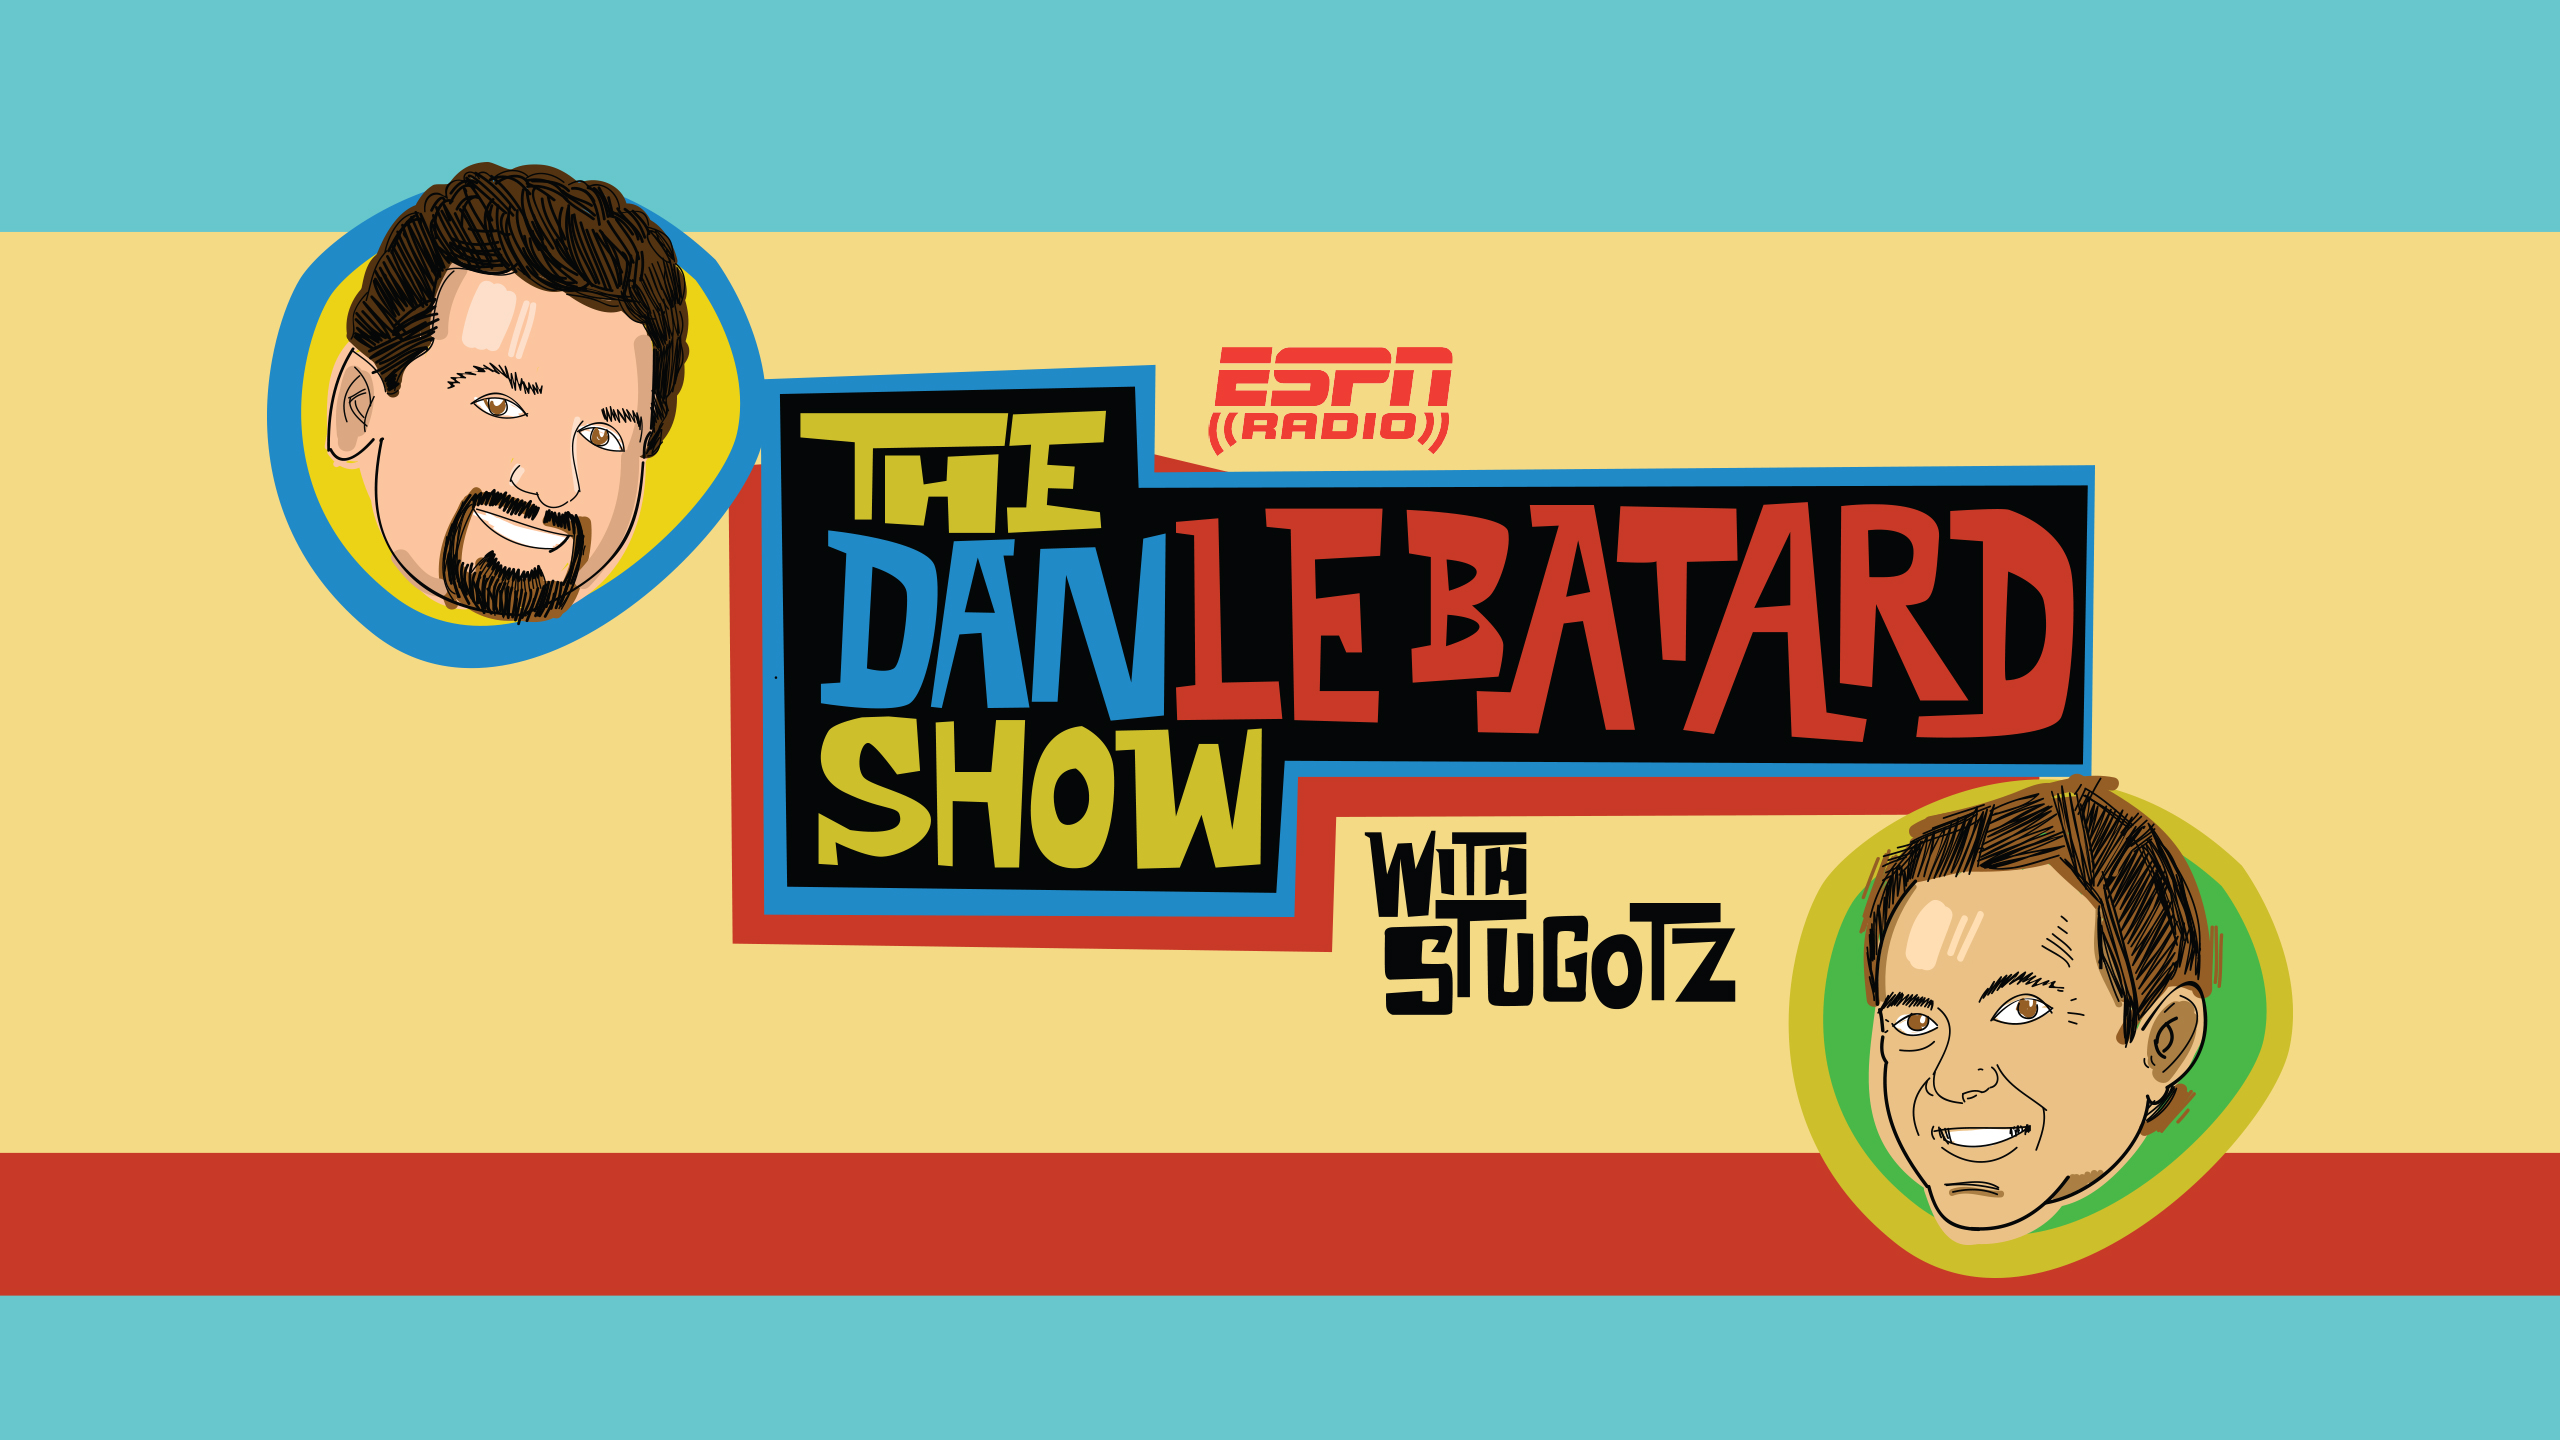 Wed, 2/13 - The Dan Le Batard Show with Stugotz Presented by Progressive